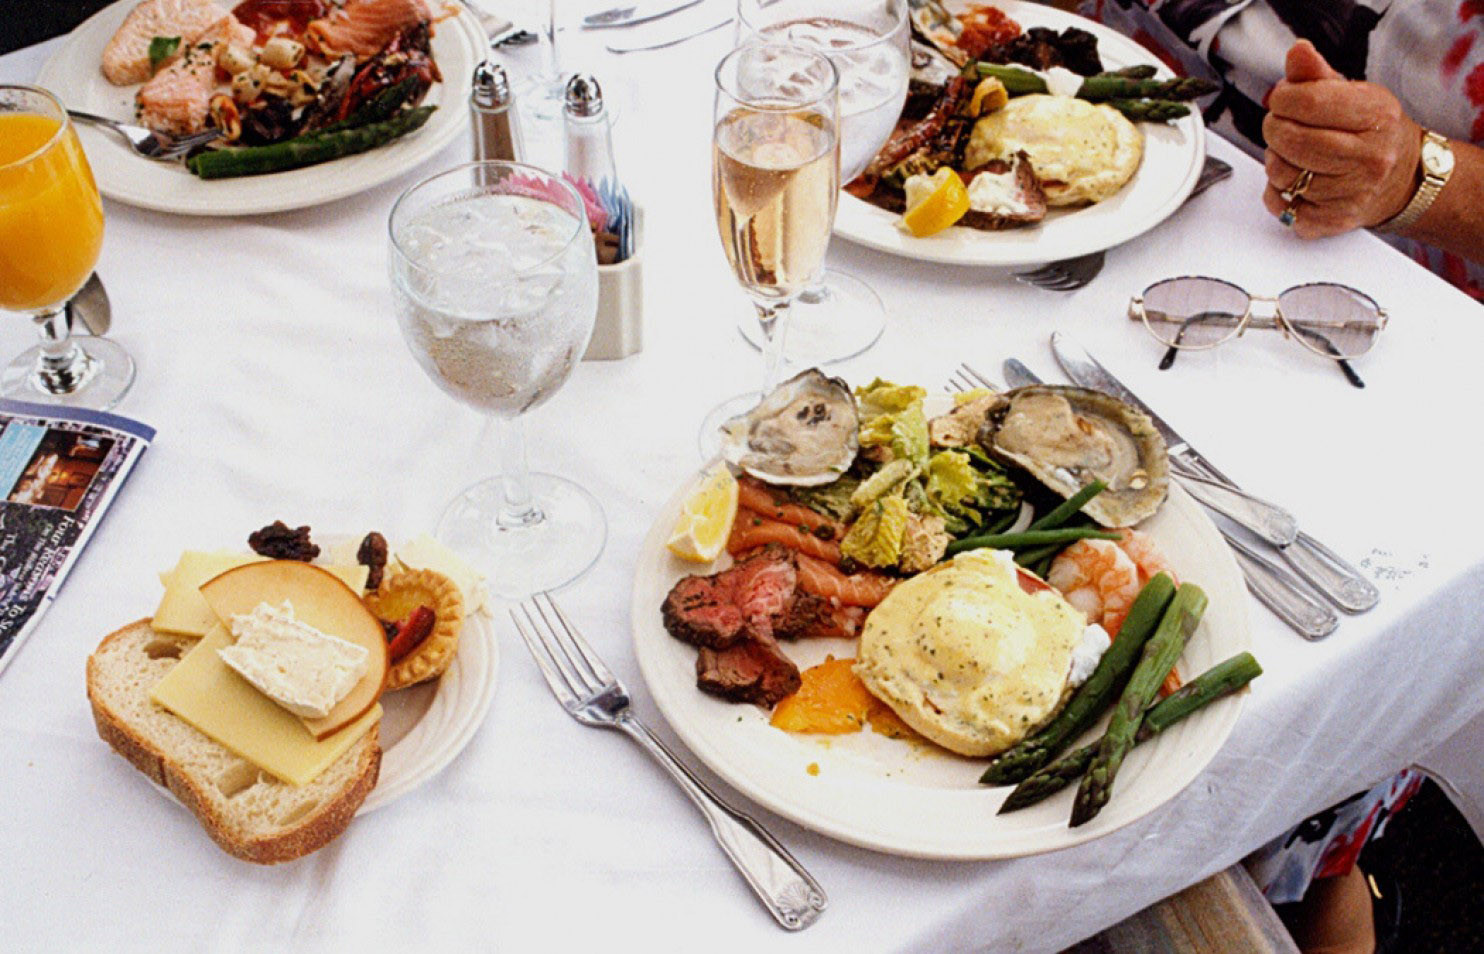 How brunch became the most delicious, and divisive, meal in America